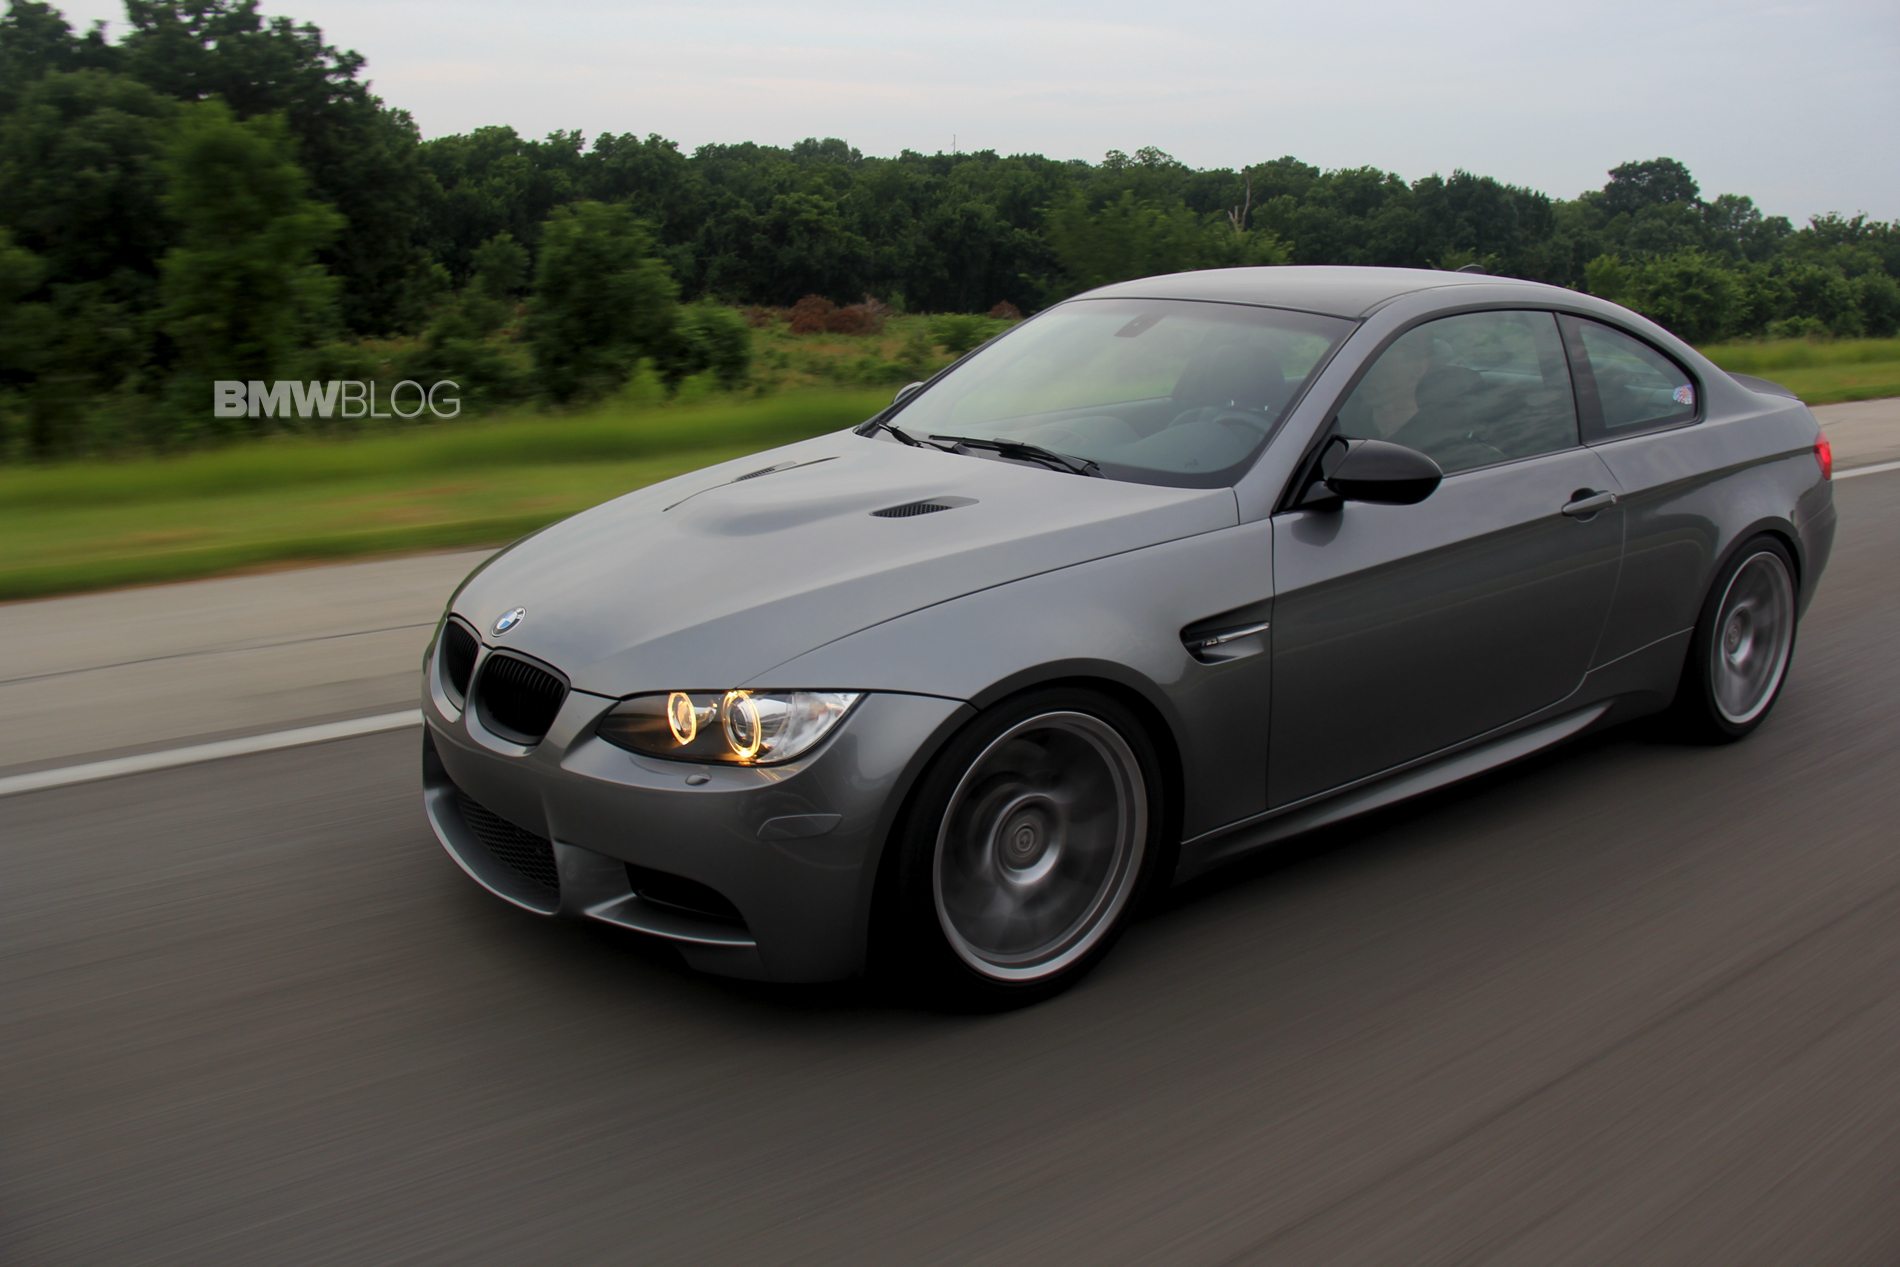 A Video Review Of Our Bmw E92 M3 Coupe